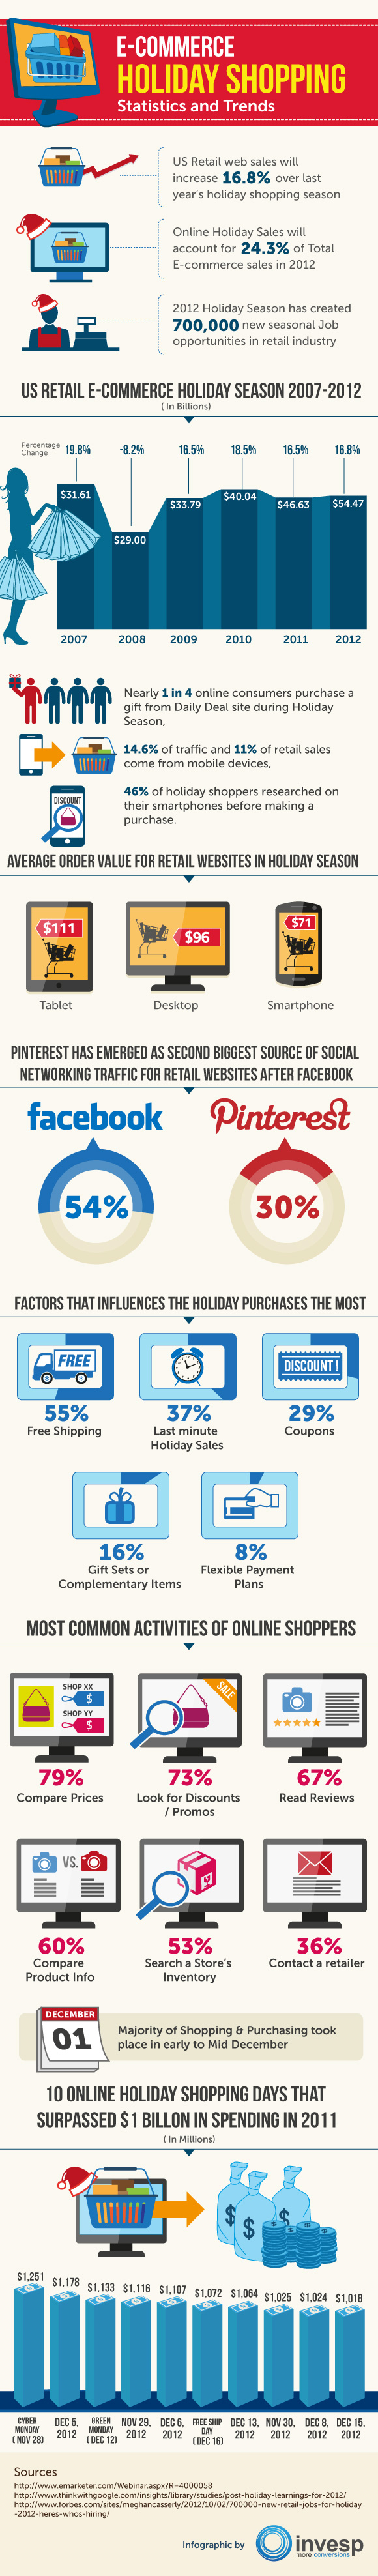 ecommerce-holiday-shopping-statistics-and-trends_508d65de3e4c3